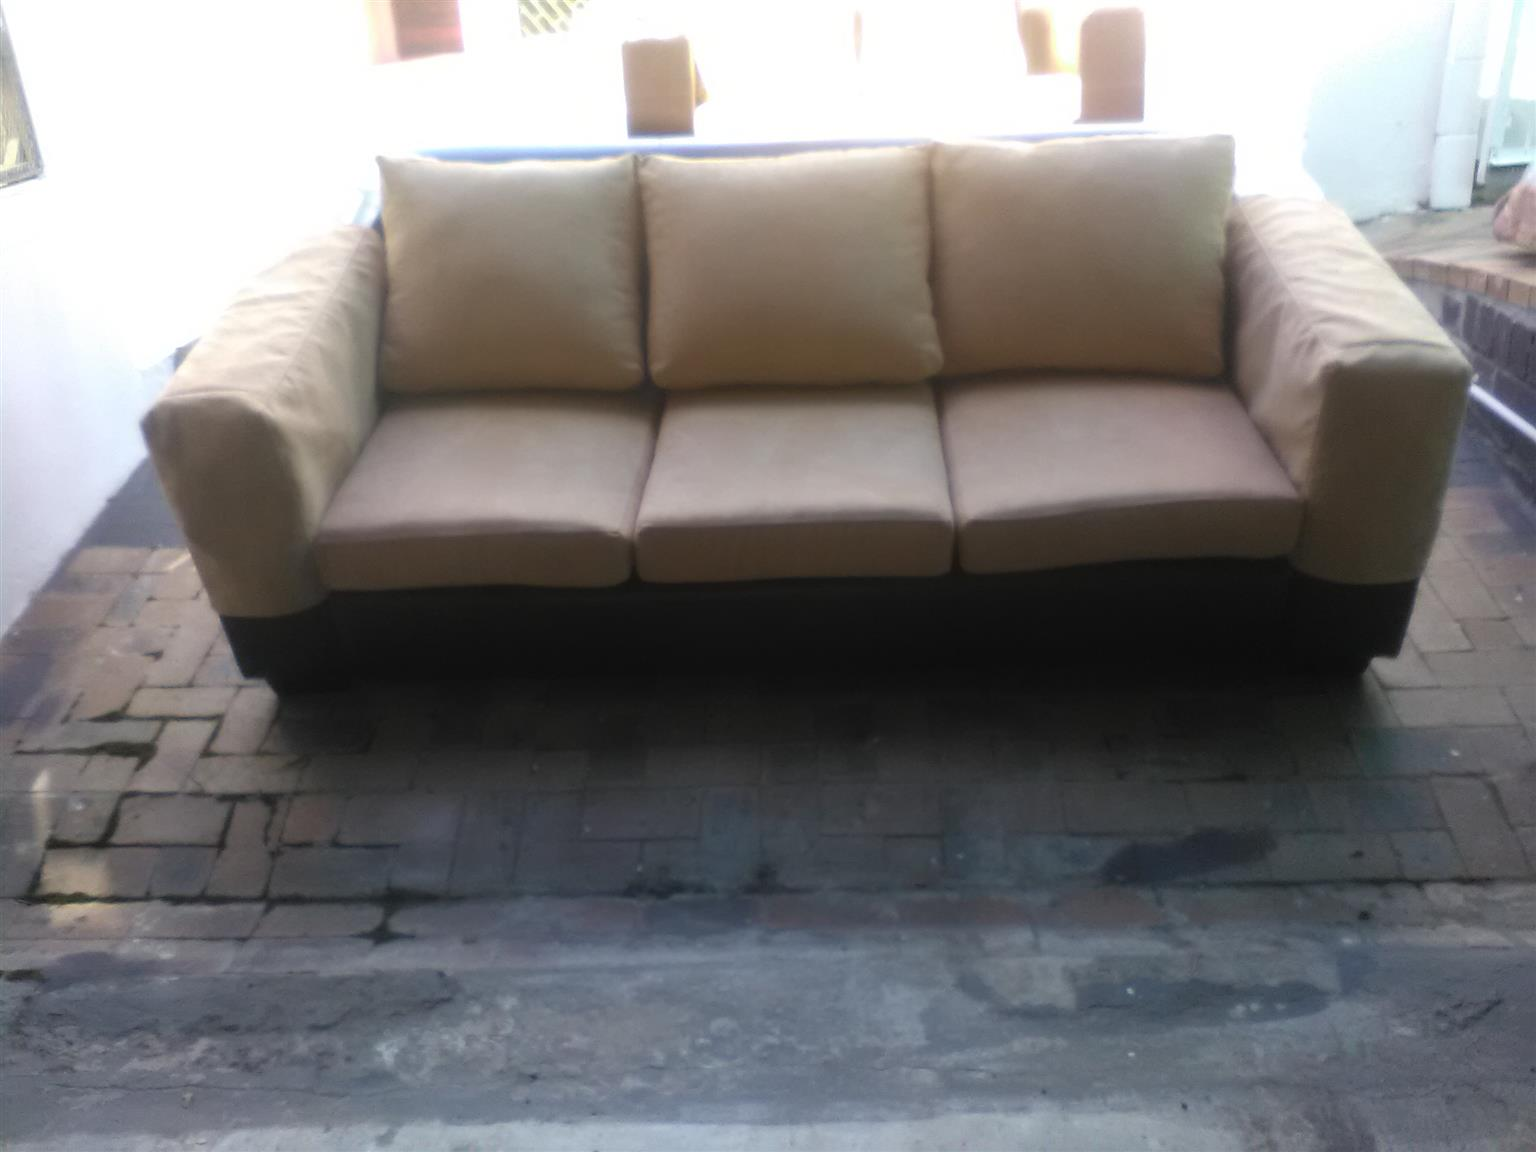 Set of 3 item: Single, double, triple (1, 2, 3) sofas leather and Fabric in excellent condition, new upholstery.